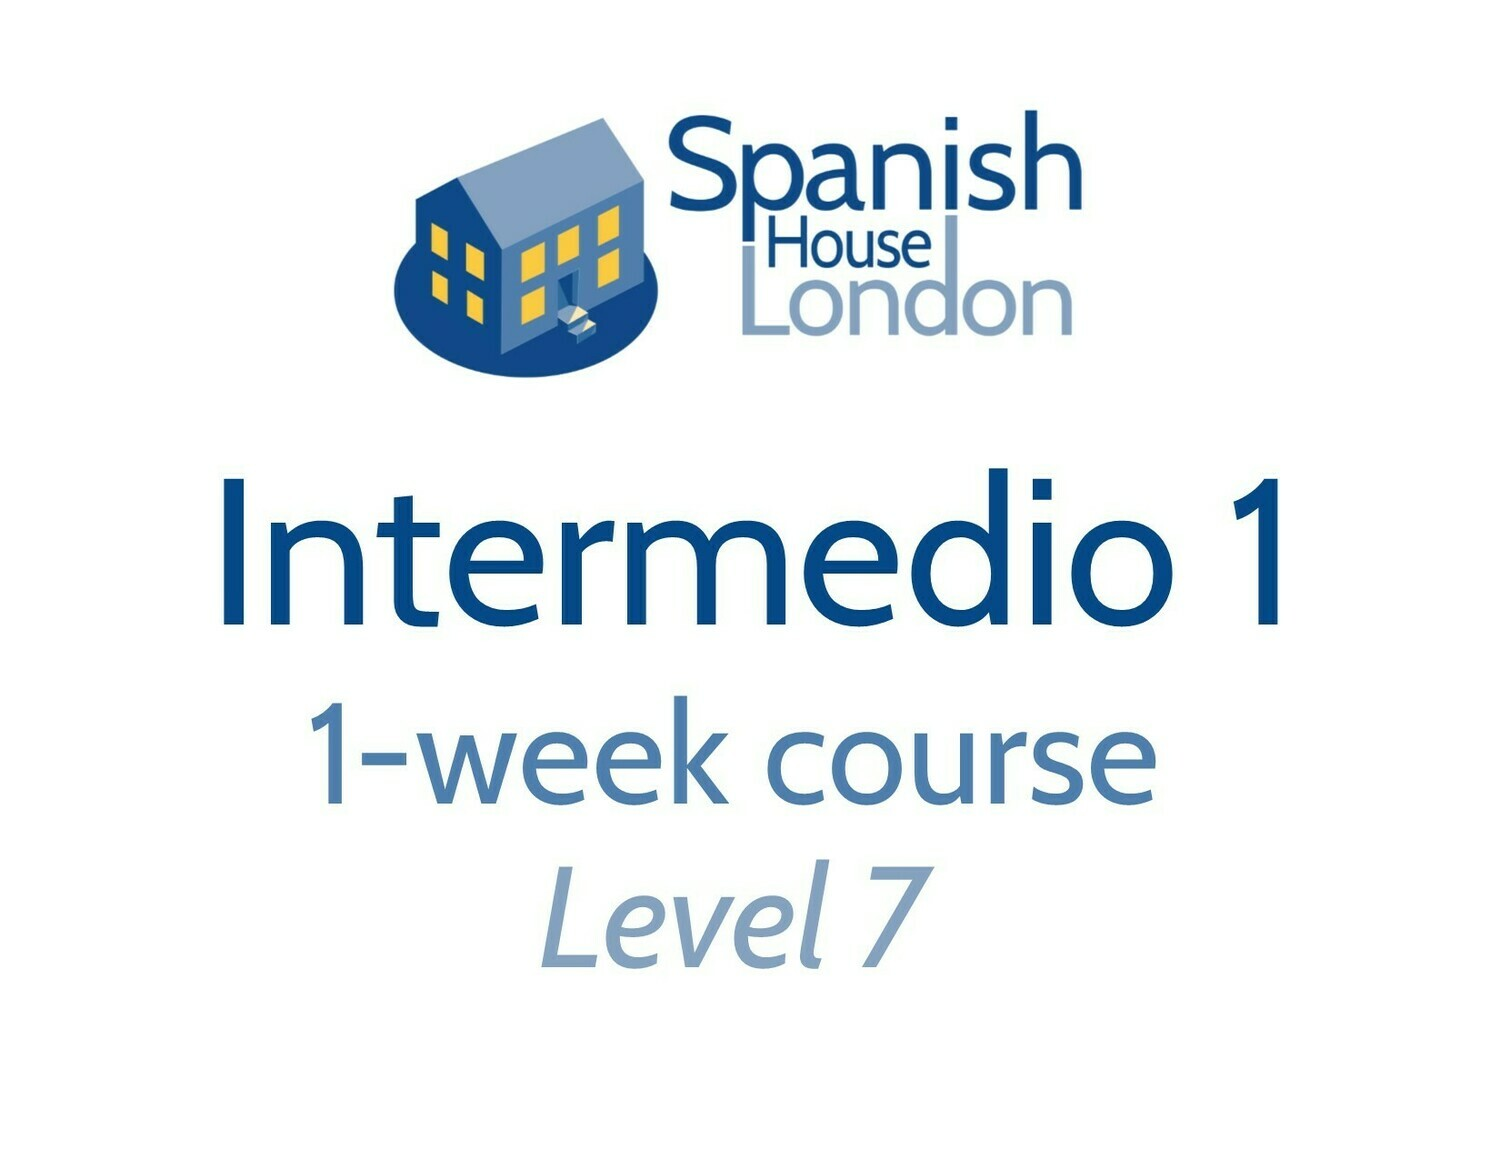 Intermedio 1 One-Week Intensive Course starting on 21st October at 10am in Clapham North